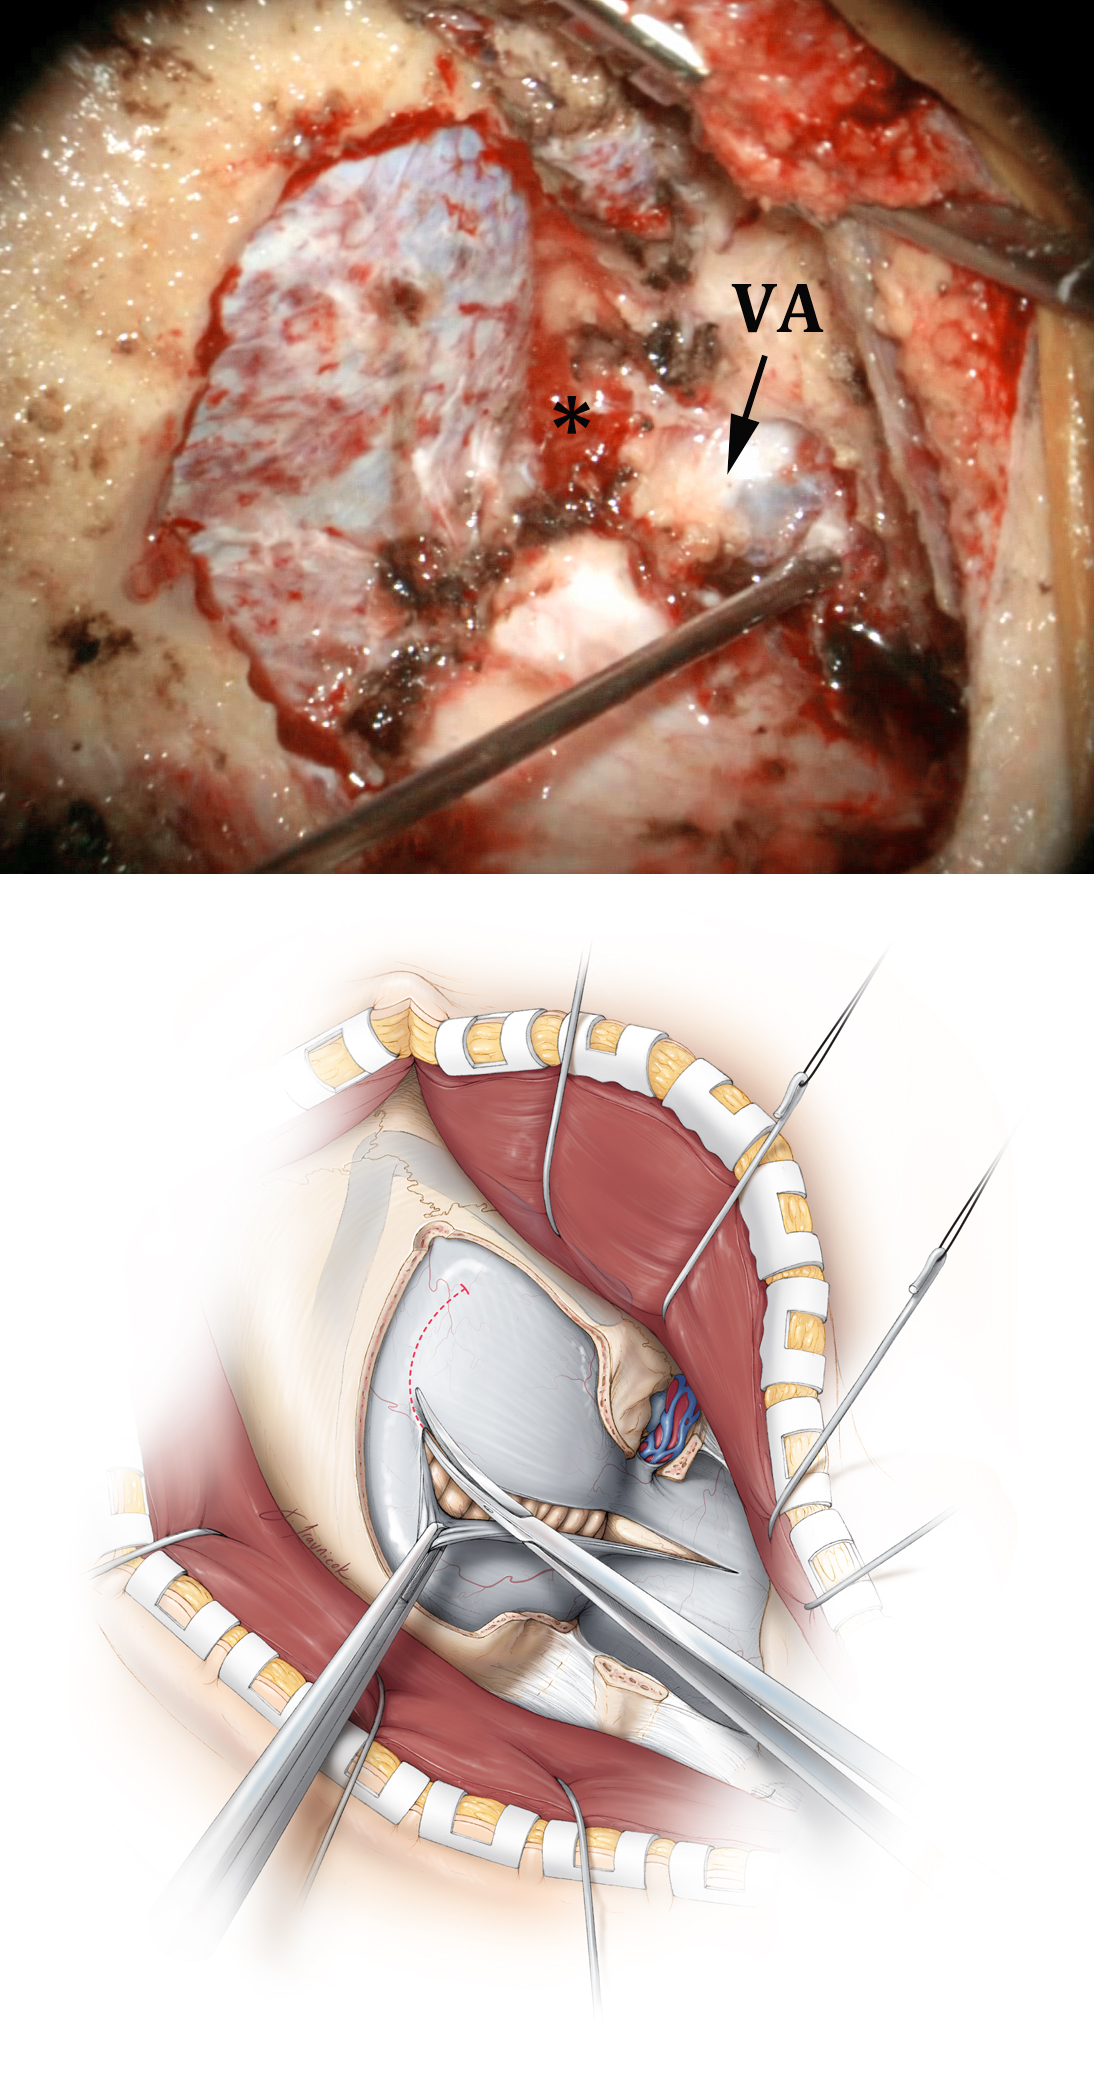 Figure 6: The intraoperative photo at the top demonstrates the vertebral artery (VA) at its entry site into the dura, covered by its venous plexus. Minimal condylar resection (*) is performed.  The intraoperative photos in the following images correspond to the ventral FMM shown in Figure 2, top row.  A curvilinear or hockey stick-shaped dural incision is made (lower image). This method of dural incision permits adequate mobilization of the dura while allowing the operator to create simple edges for watertight approximation at the time of dural closure.